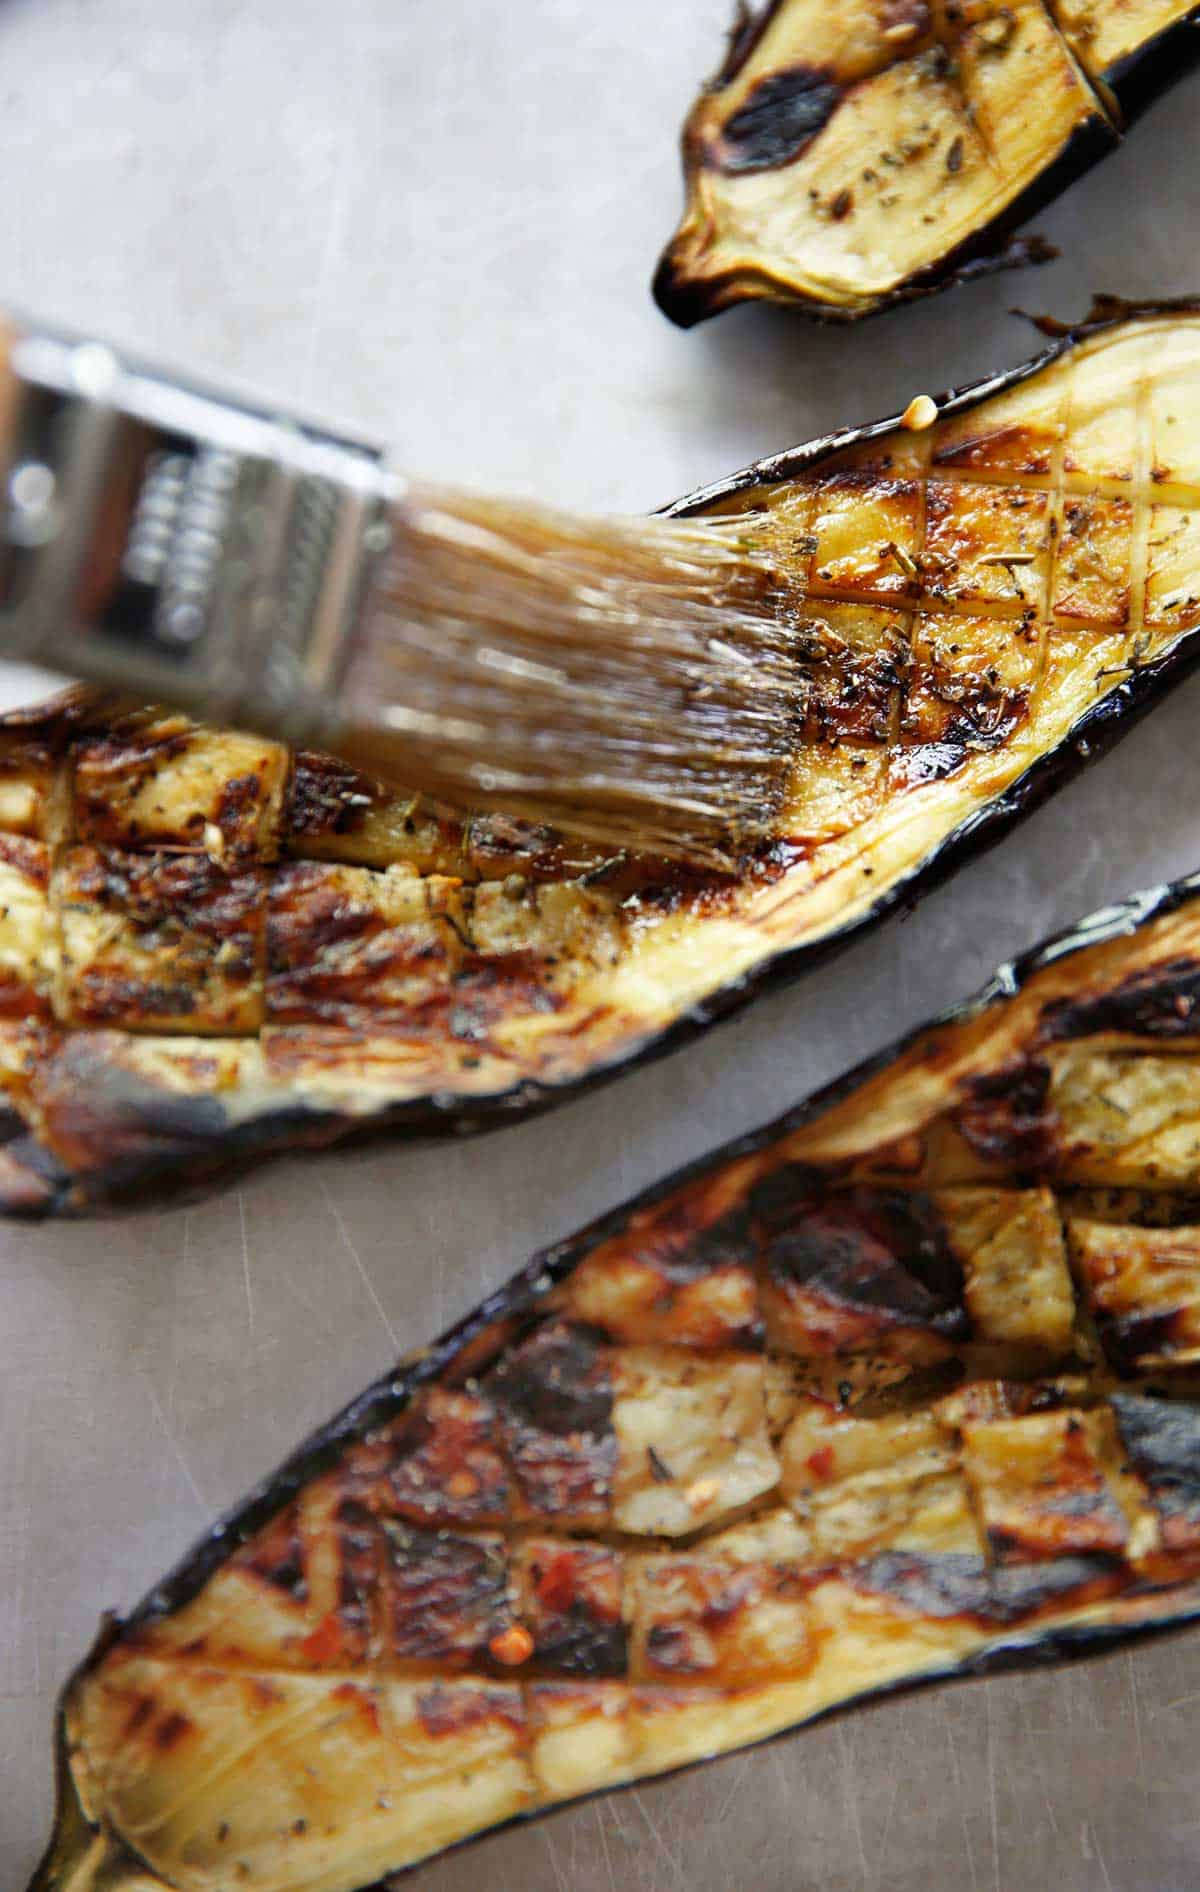 How to make Grilled Eggplant